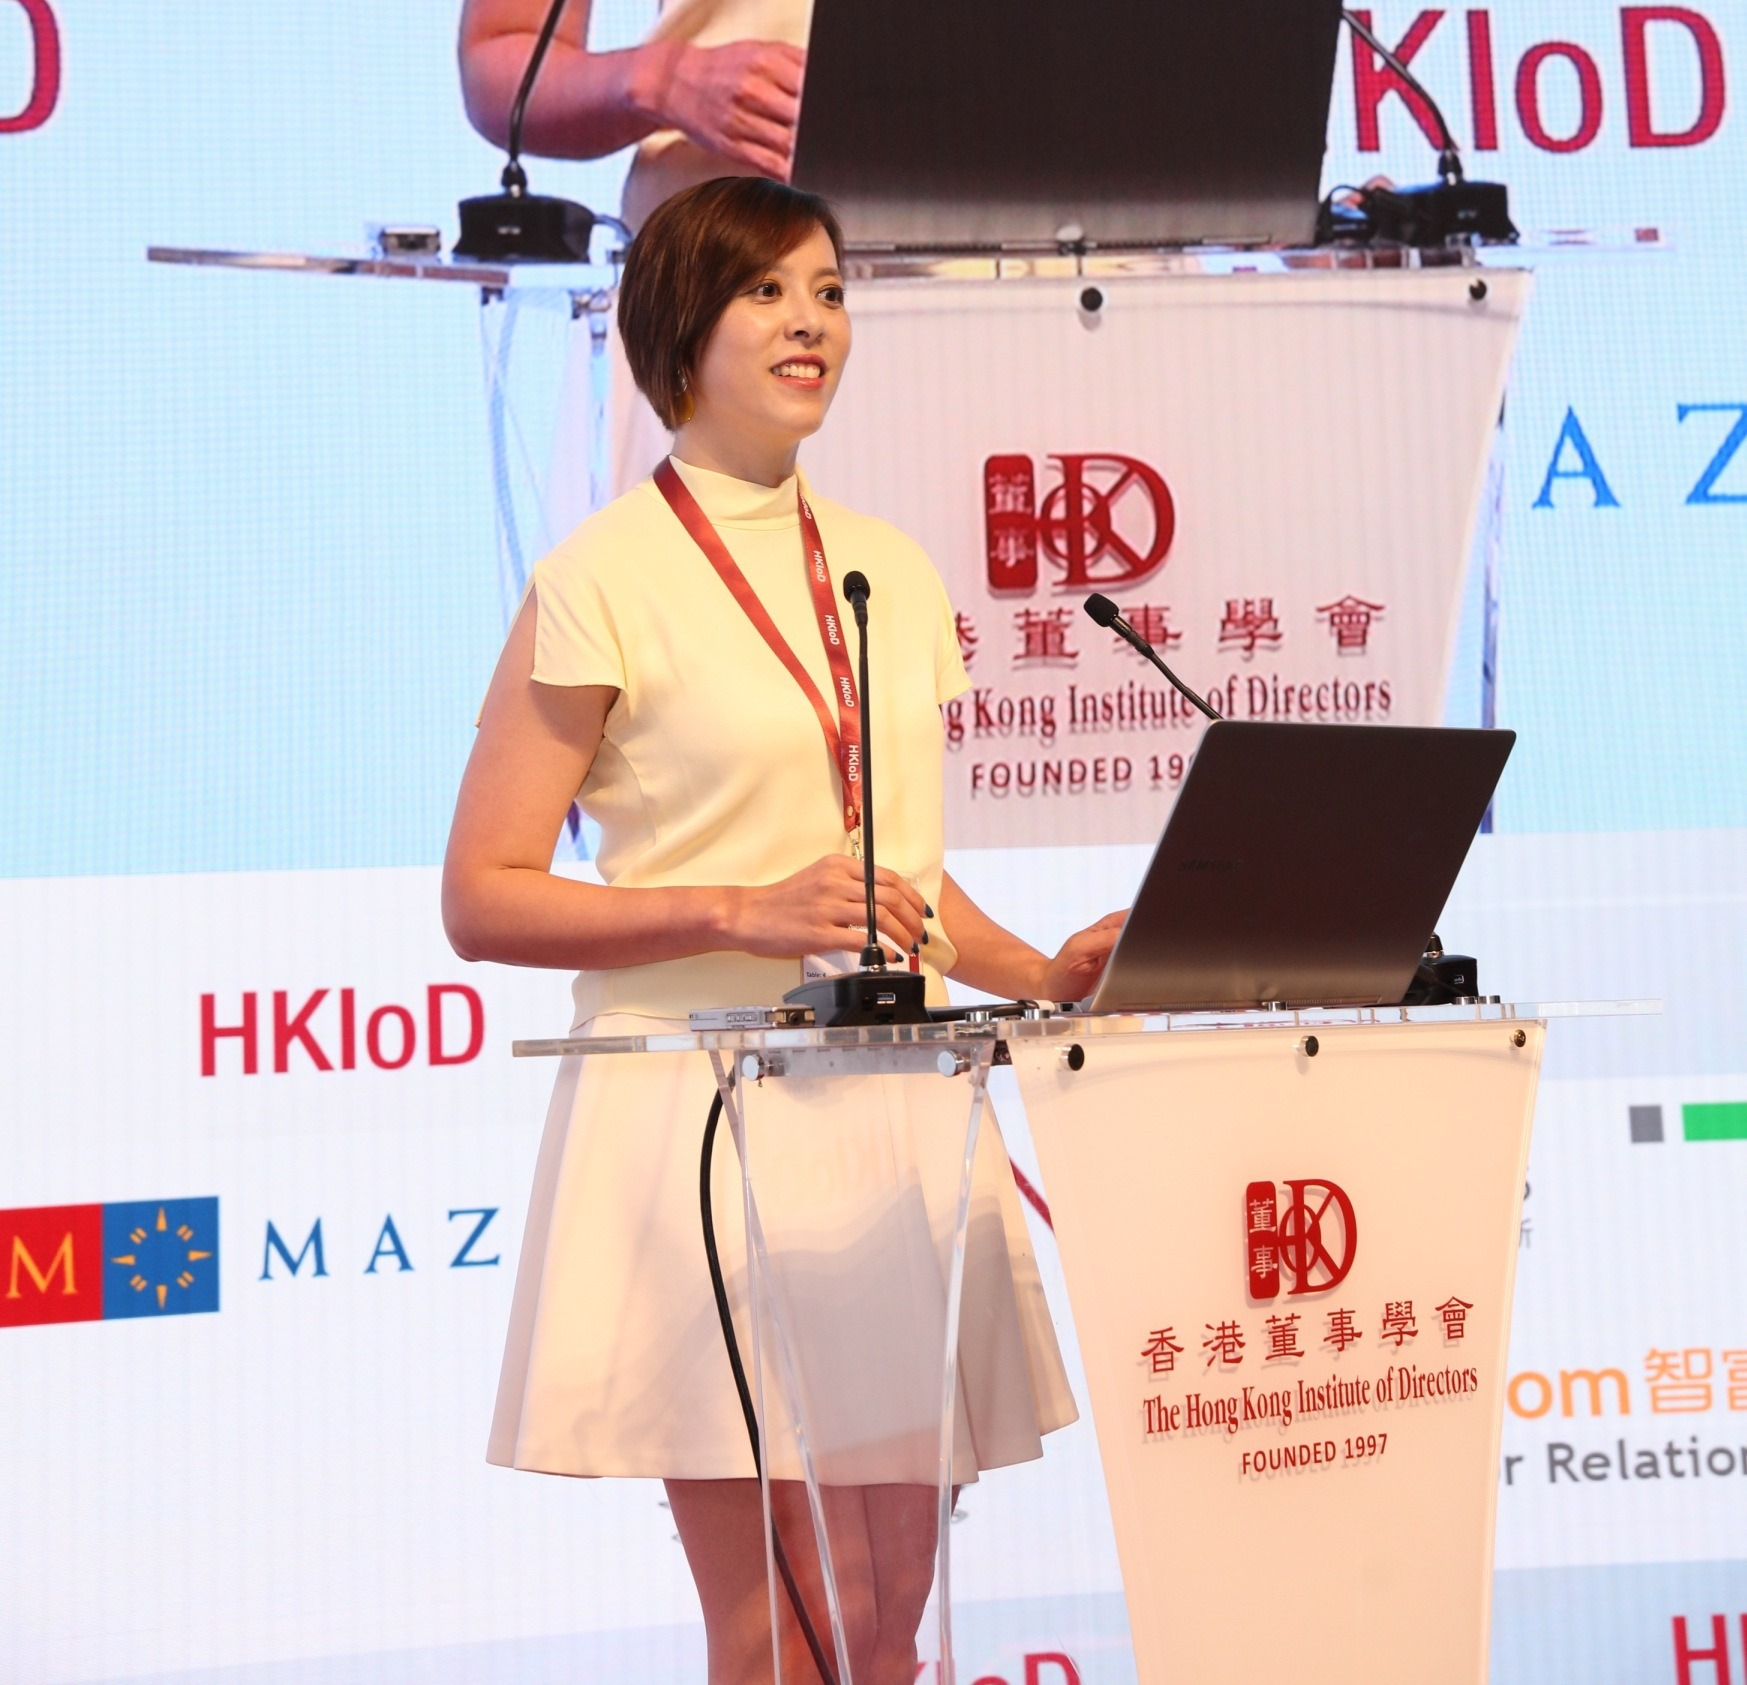 Being honoured with the Directors of the Year Awards, our CEO Ada Wong was invited to speak at the Directors - Symposium 2019 by Hong Kong Institute of Directors (HKIoD).